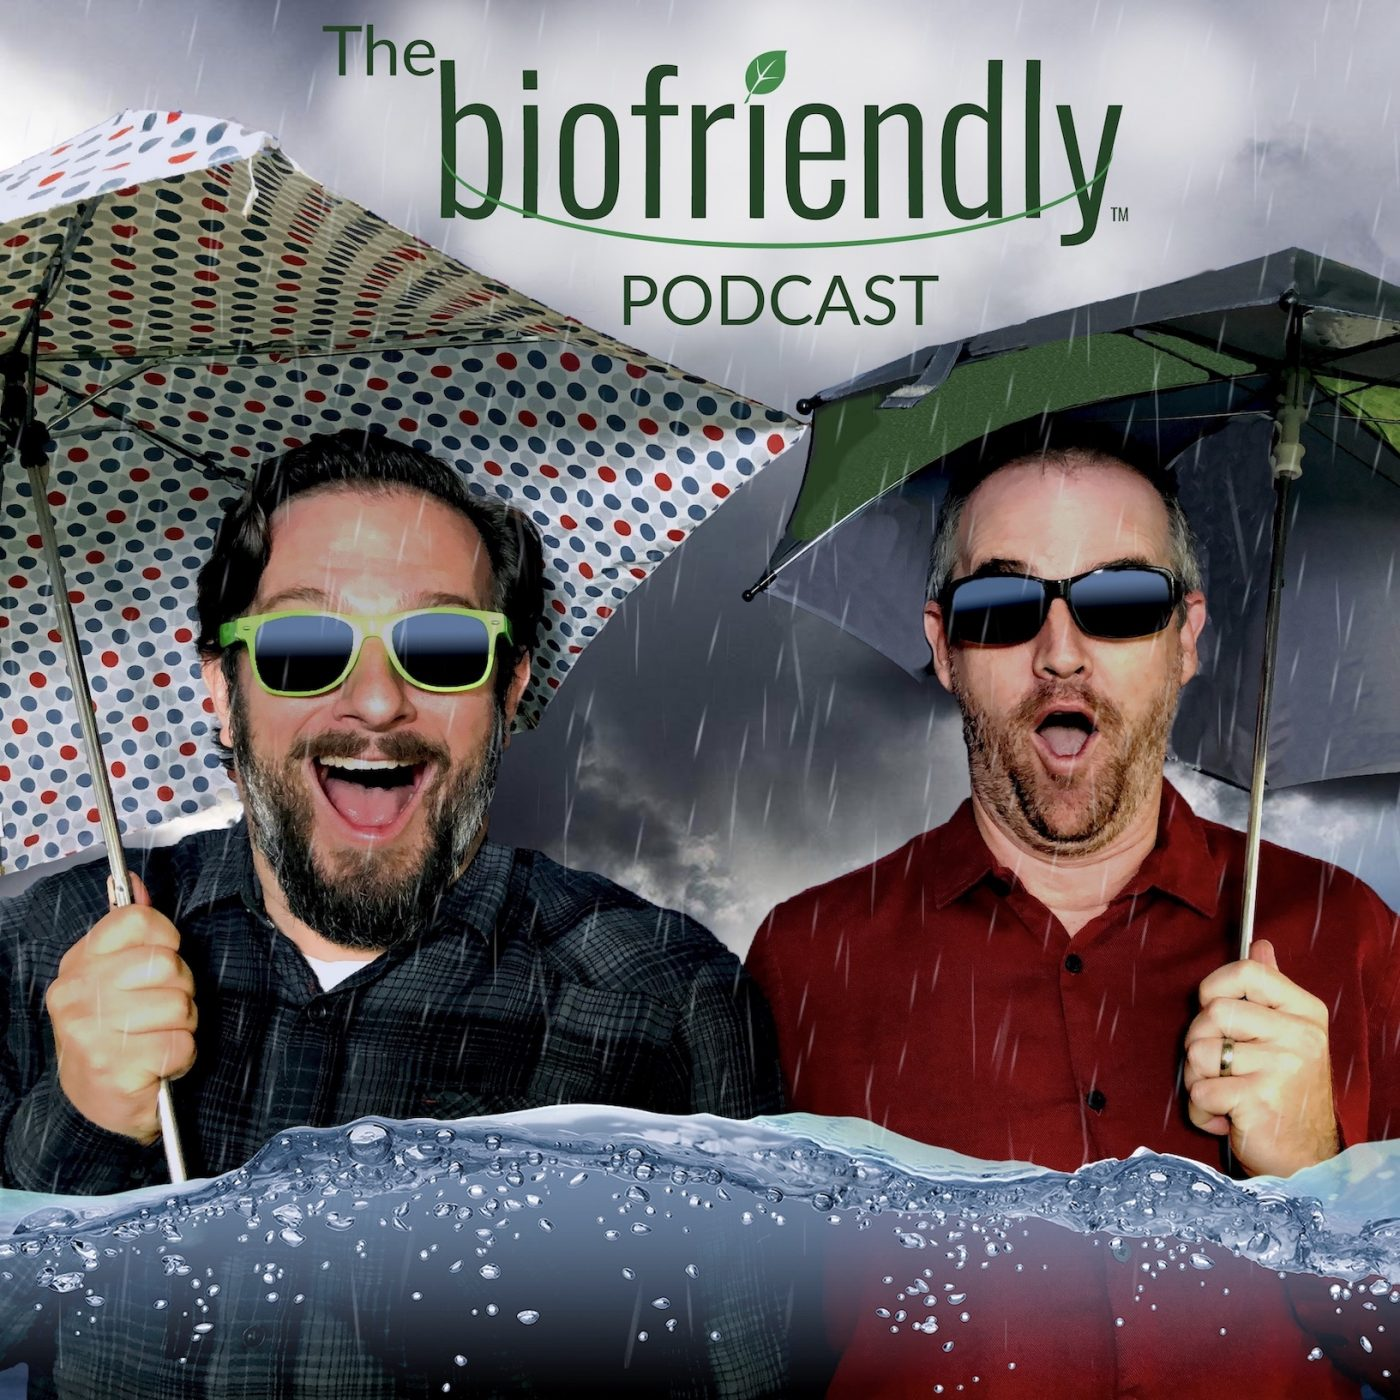 Biofriendly Expands Brand To Include Podcast and Digital Magazine